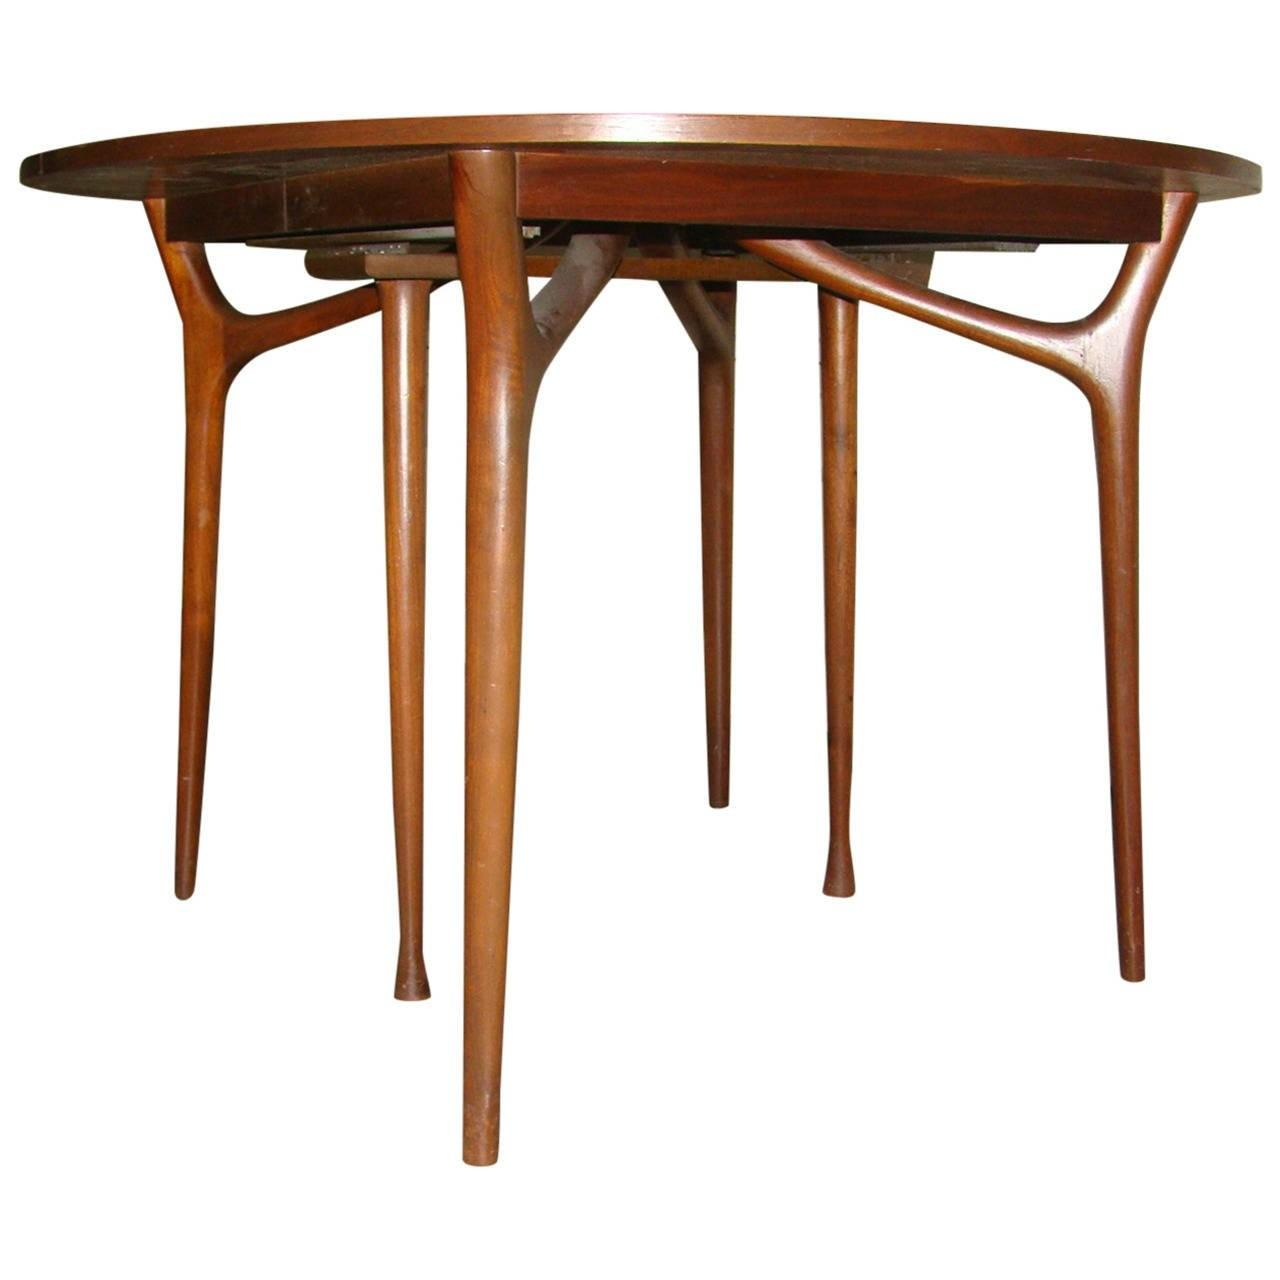 Sculptural Danish Modern Expandable Spider Dining Table